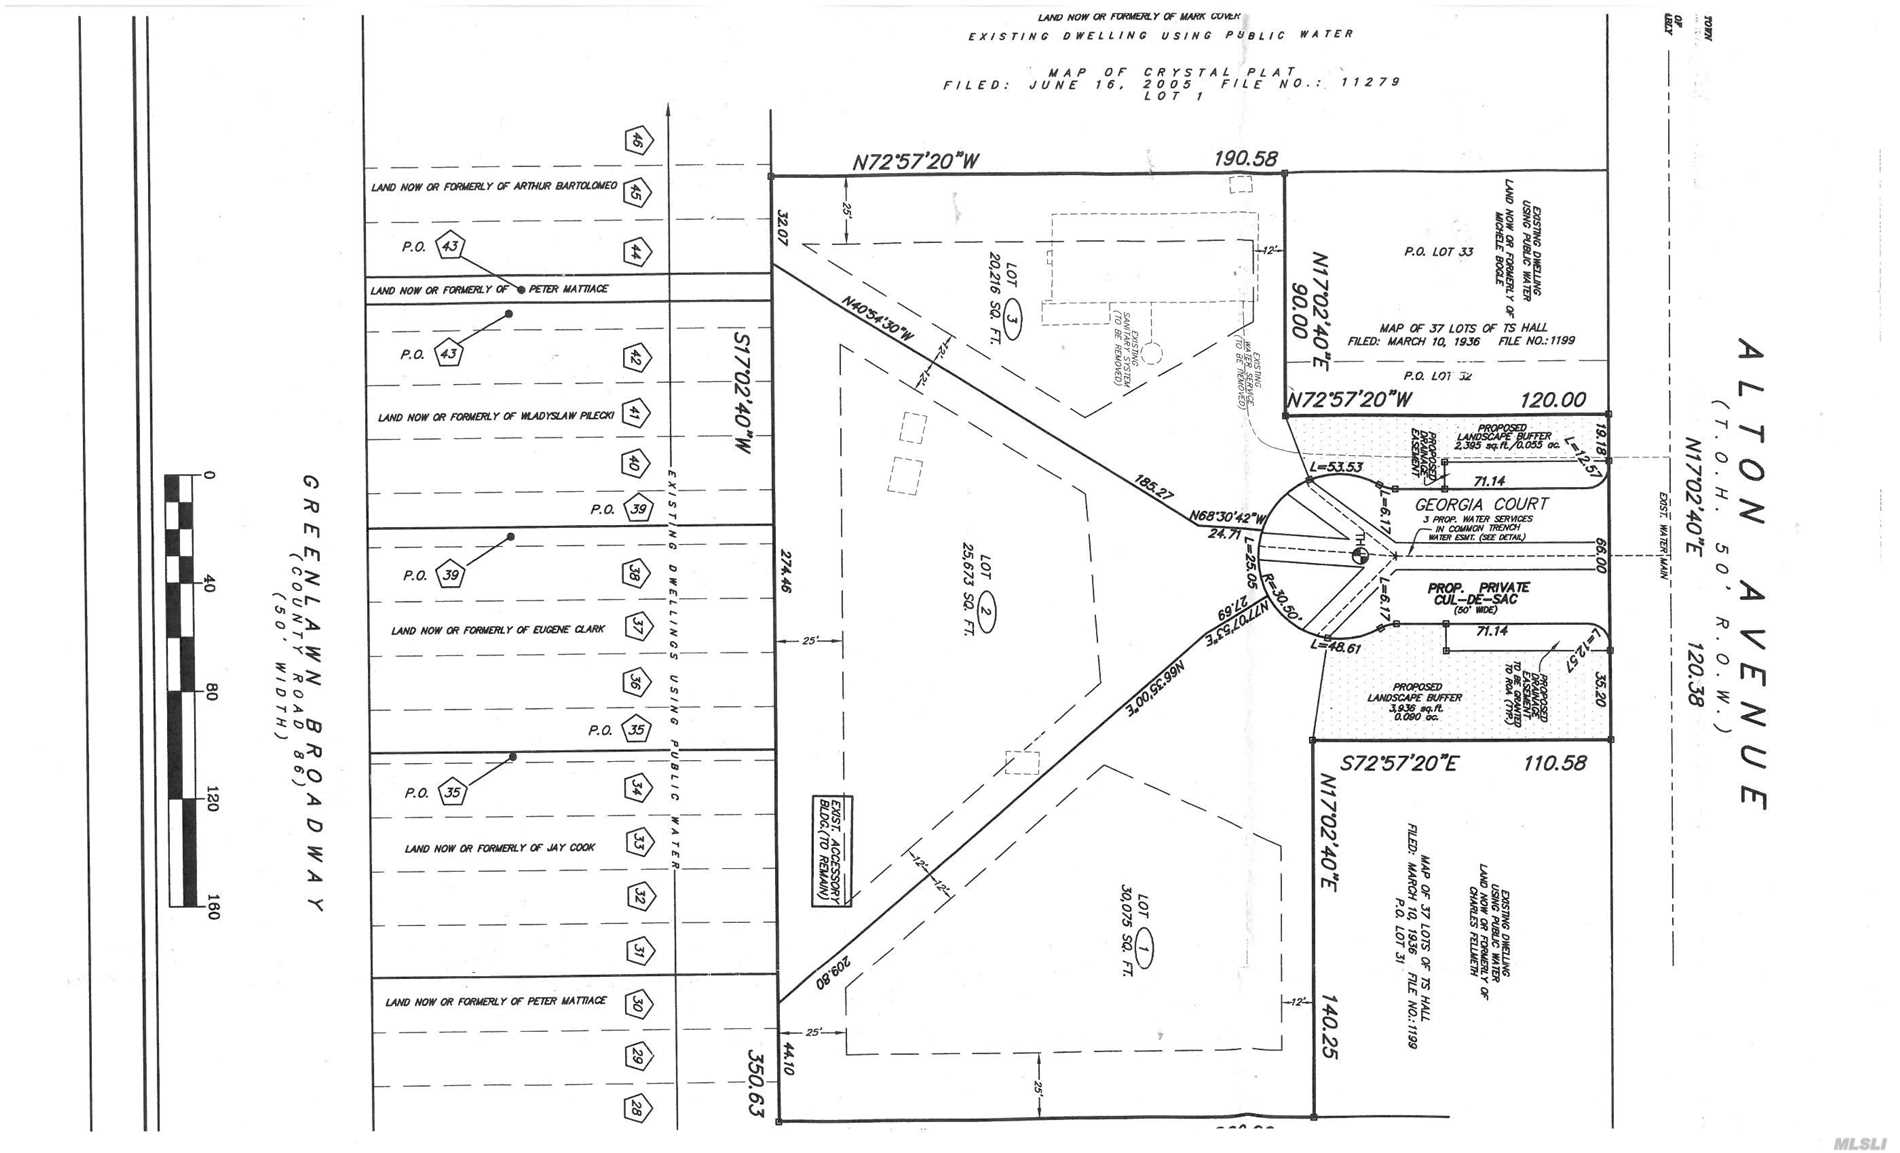 Great Opportunity For 3 Lot Subdivision Of 1/2 Acre Lots In Harborfields Sd! Flat, Level Property On Cul De Sac. Subdivision Had Final Approval In 2015. The filing has been extended. Need Buyer To File Map; Post Bonds, As Well As Other Minor Details.